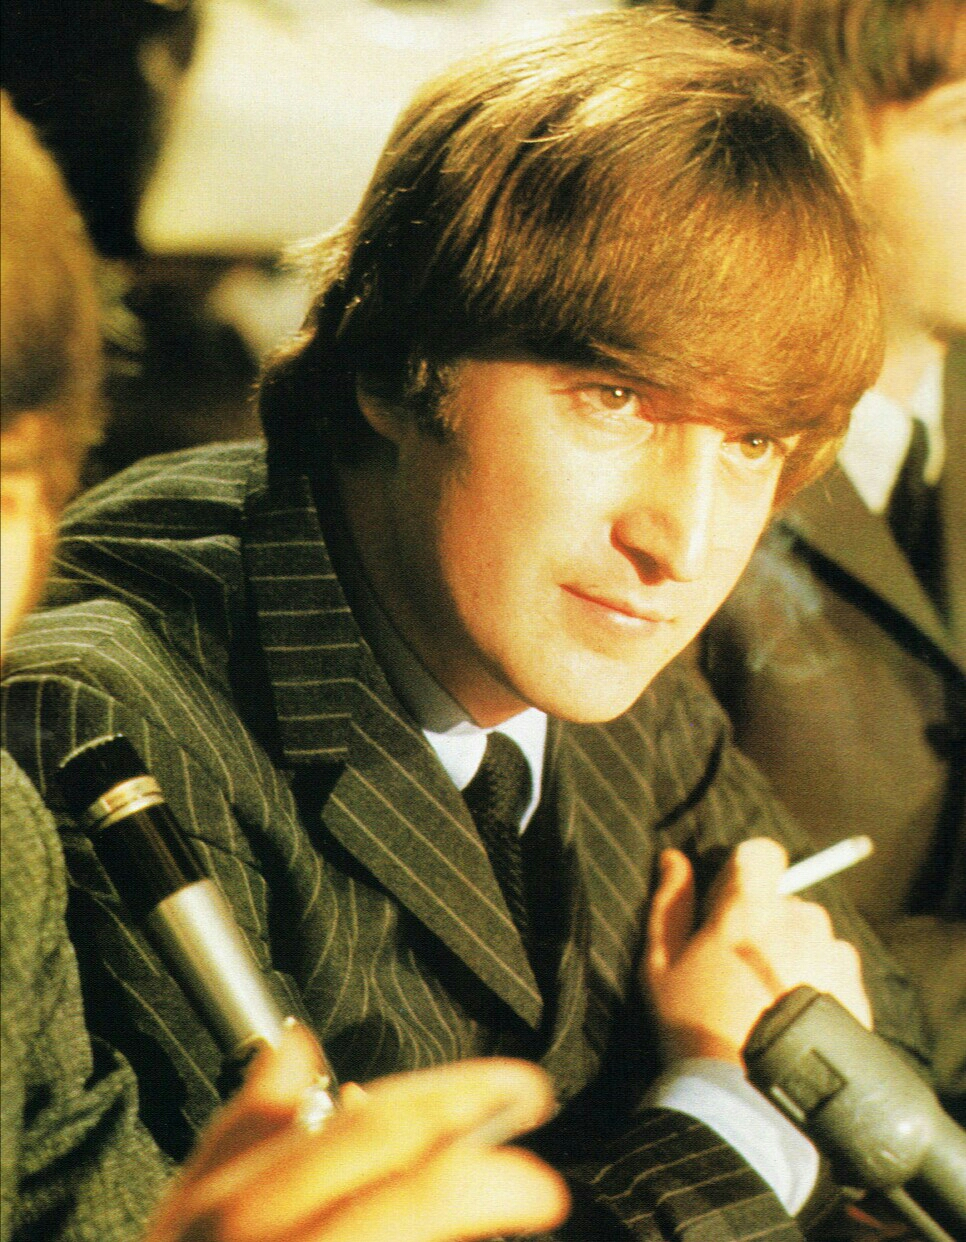 John Lennon at a Beatles' press conference, circa 1965.